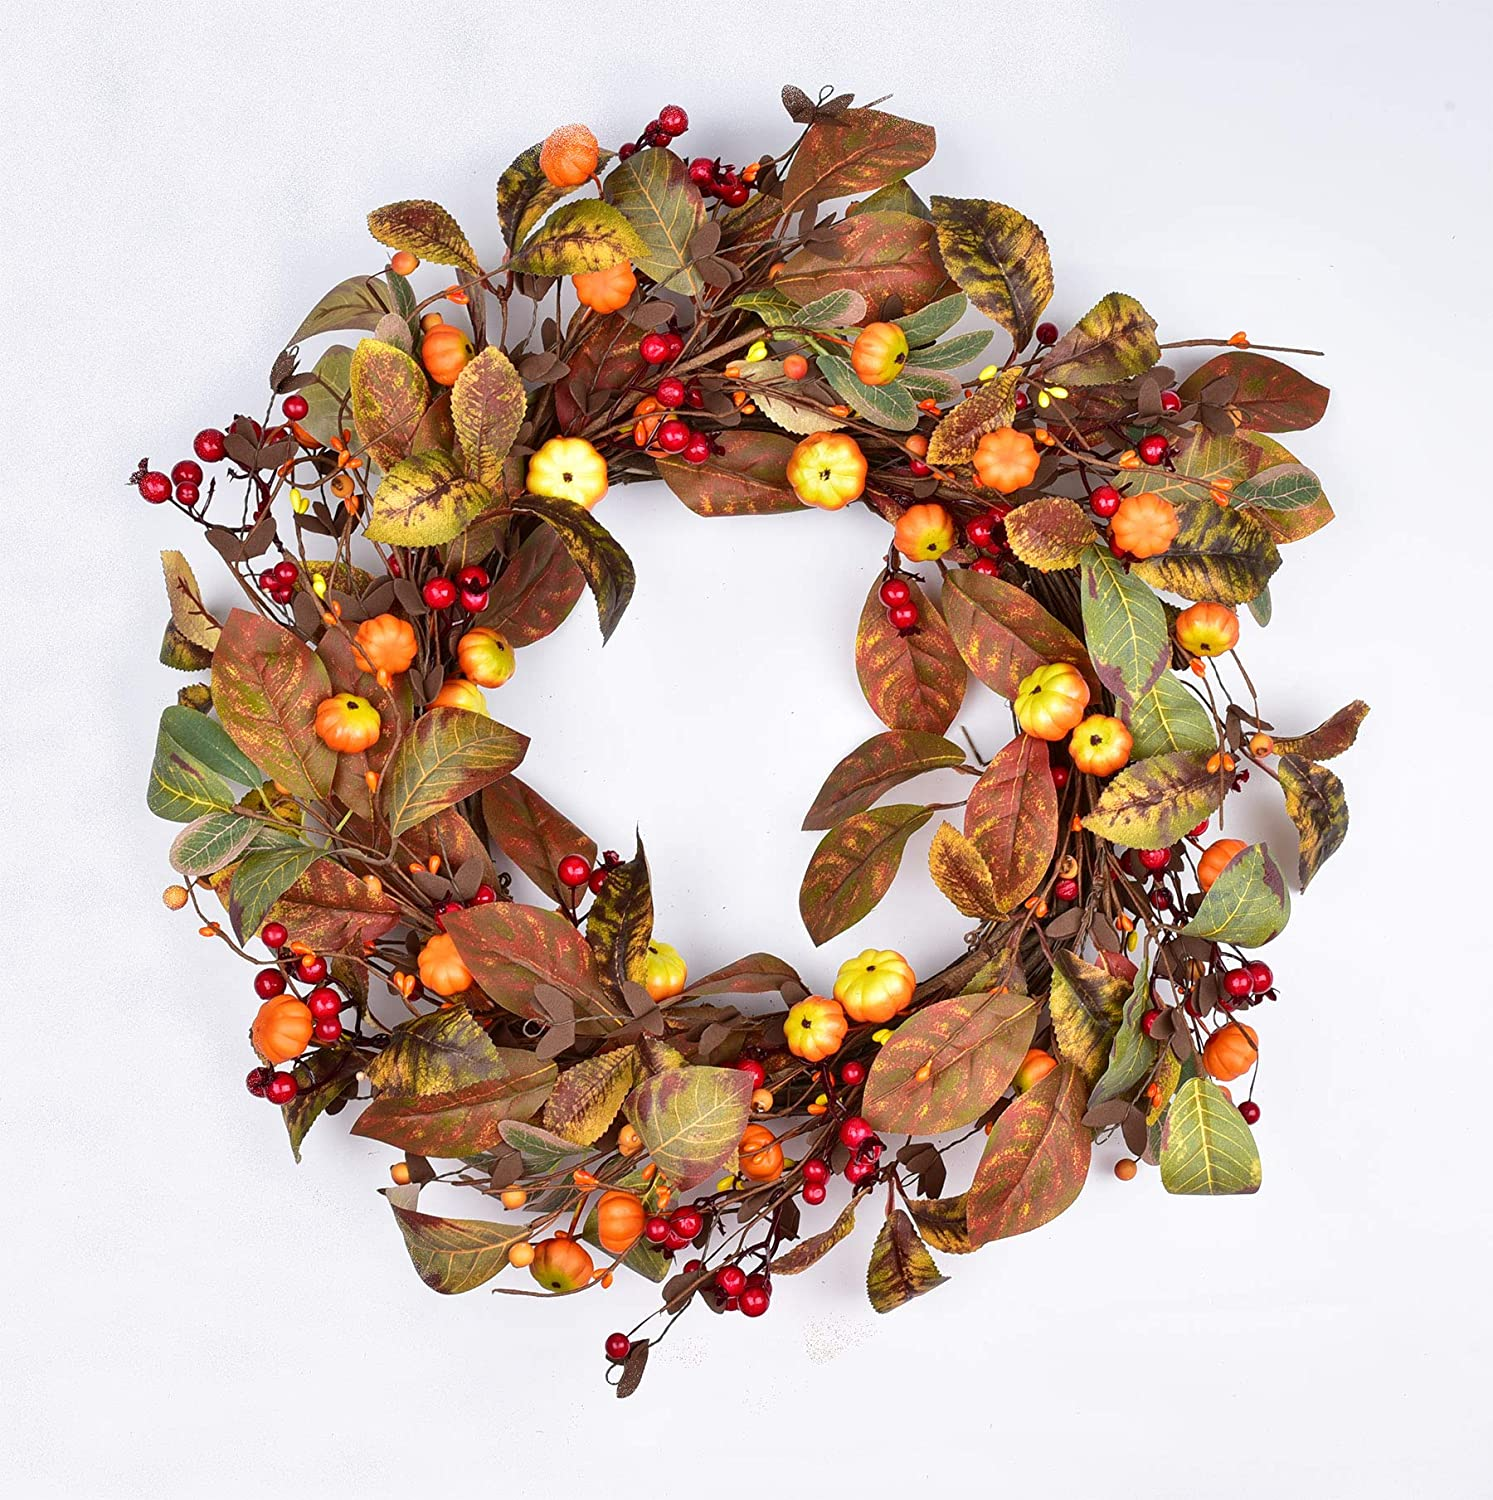 18Inch Artificial Pumpkin Berry Wreath - Fall Leave Wreath Front Door Wreath for Home Kitchen Thanksgiving Decor